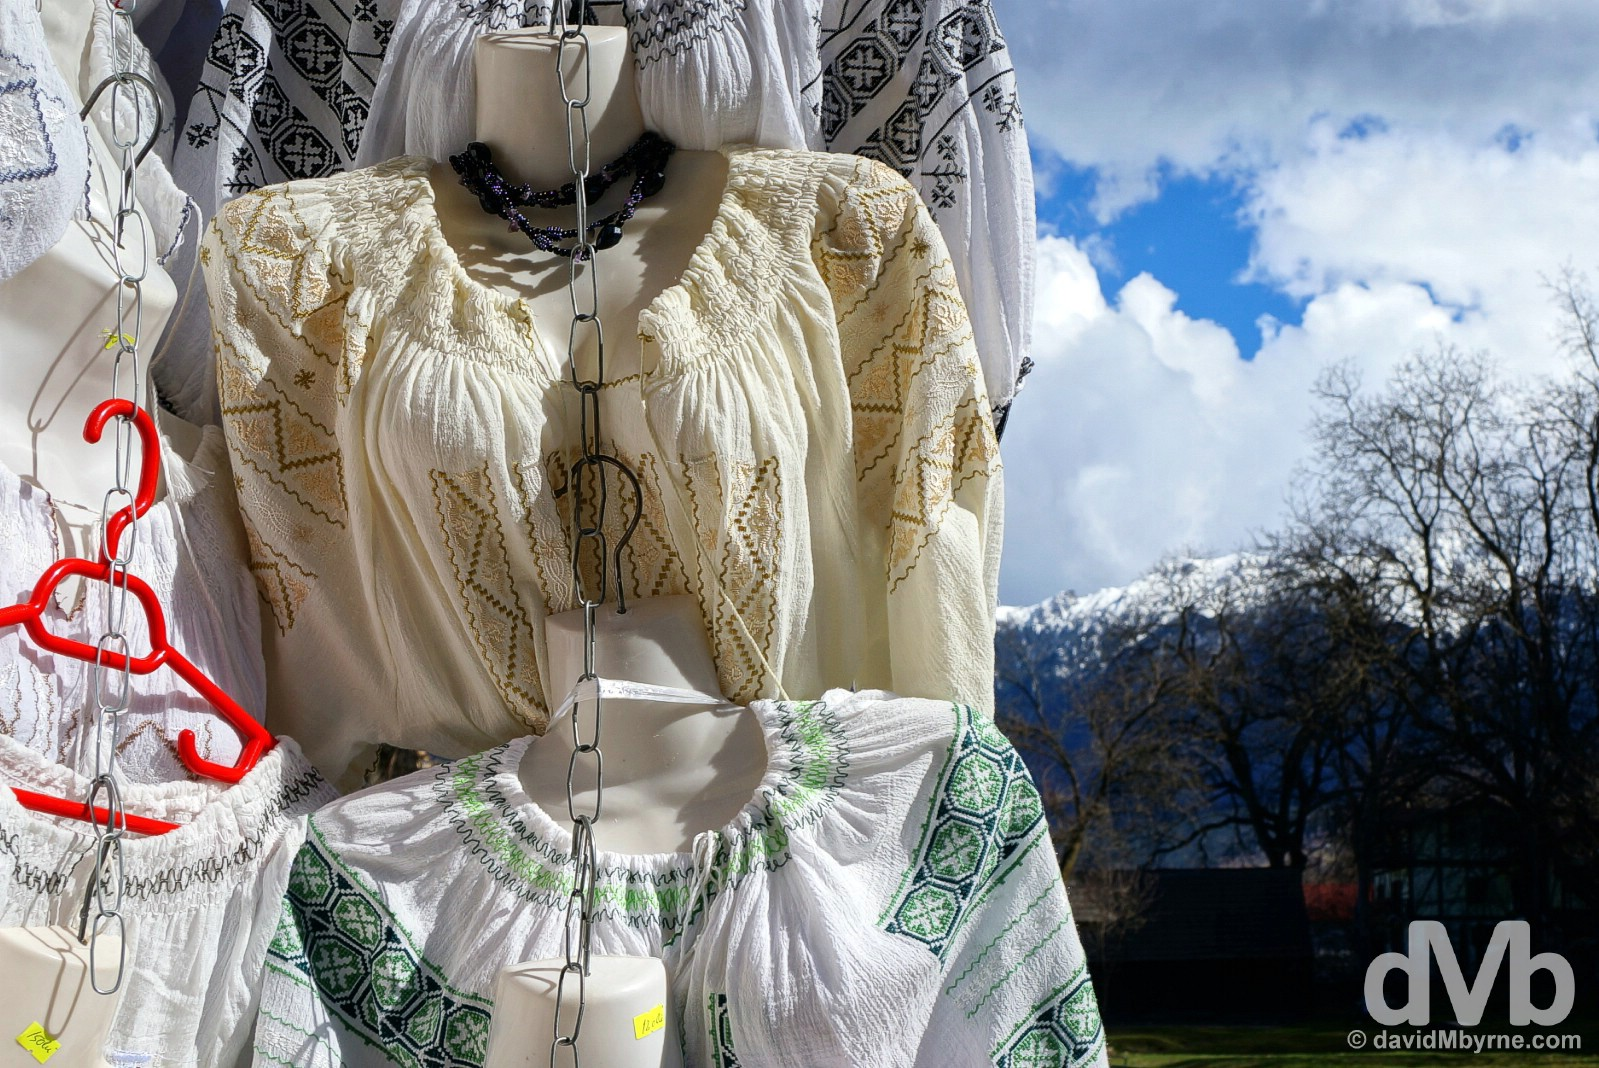 Traditional clothing for sale in Bran, Transylvania, Romania. April 2, 2015.